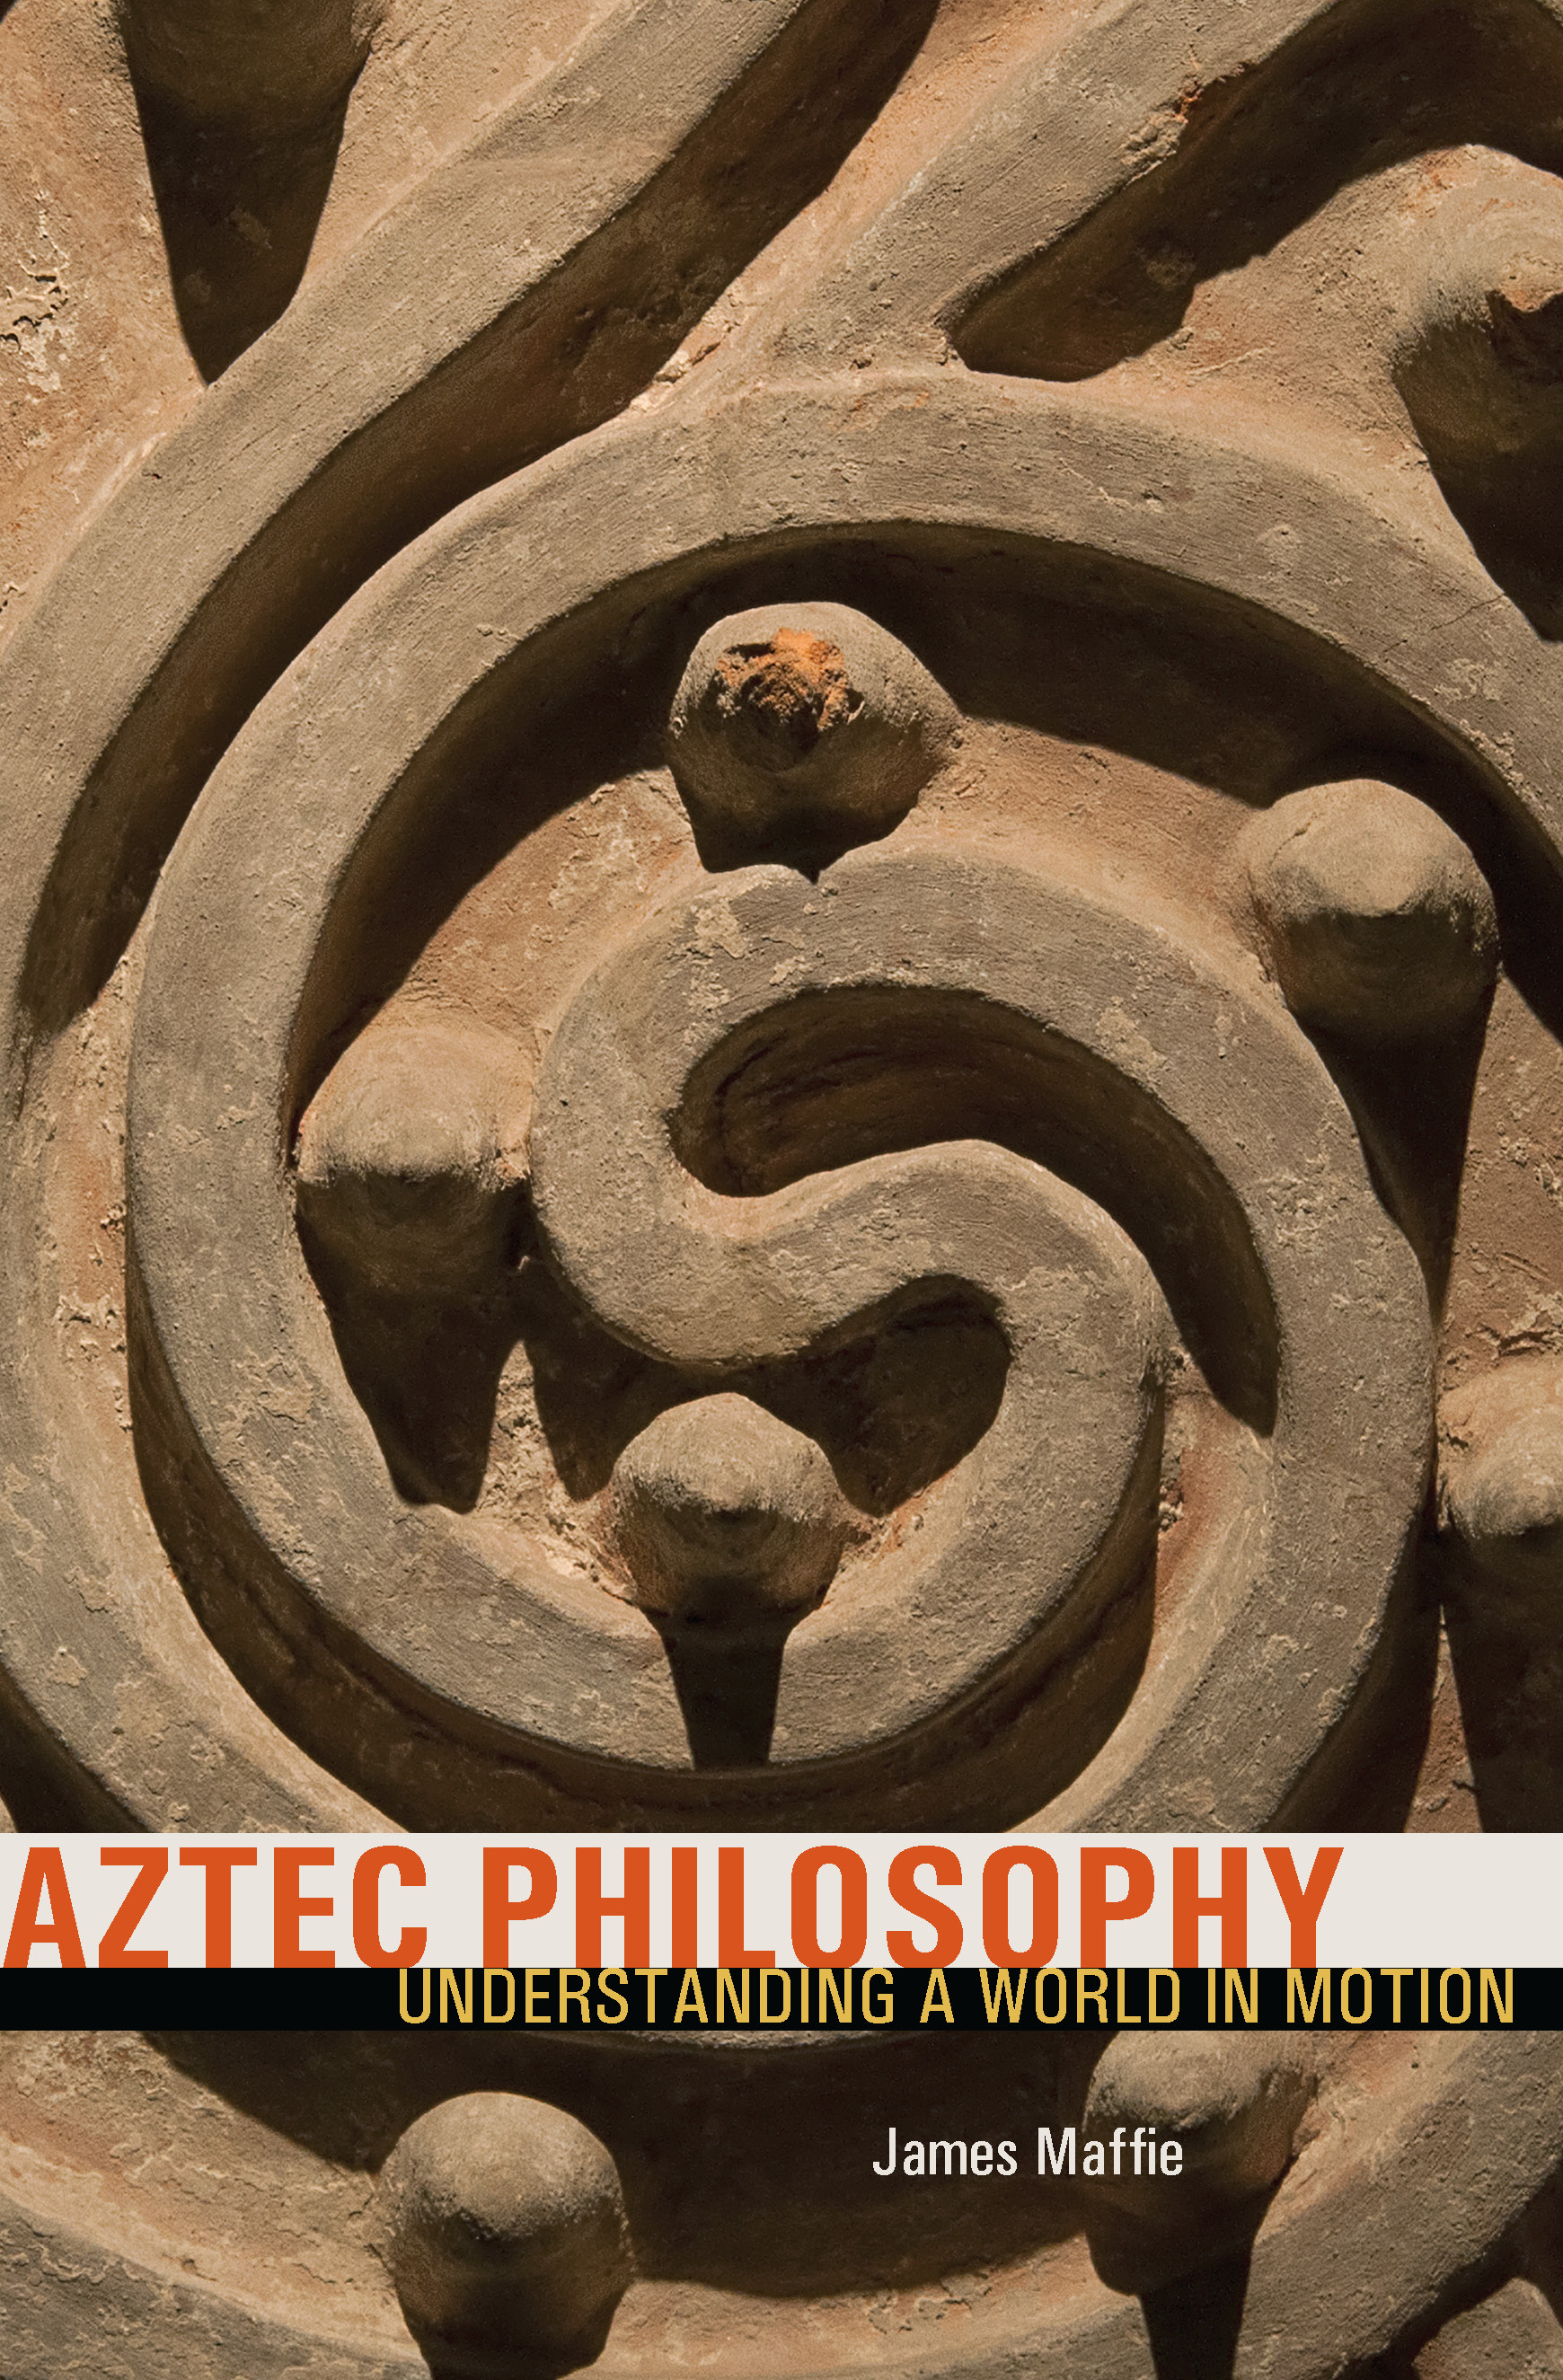 Aztec Philosophy Understanding a World in Motion